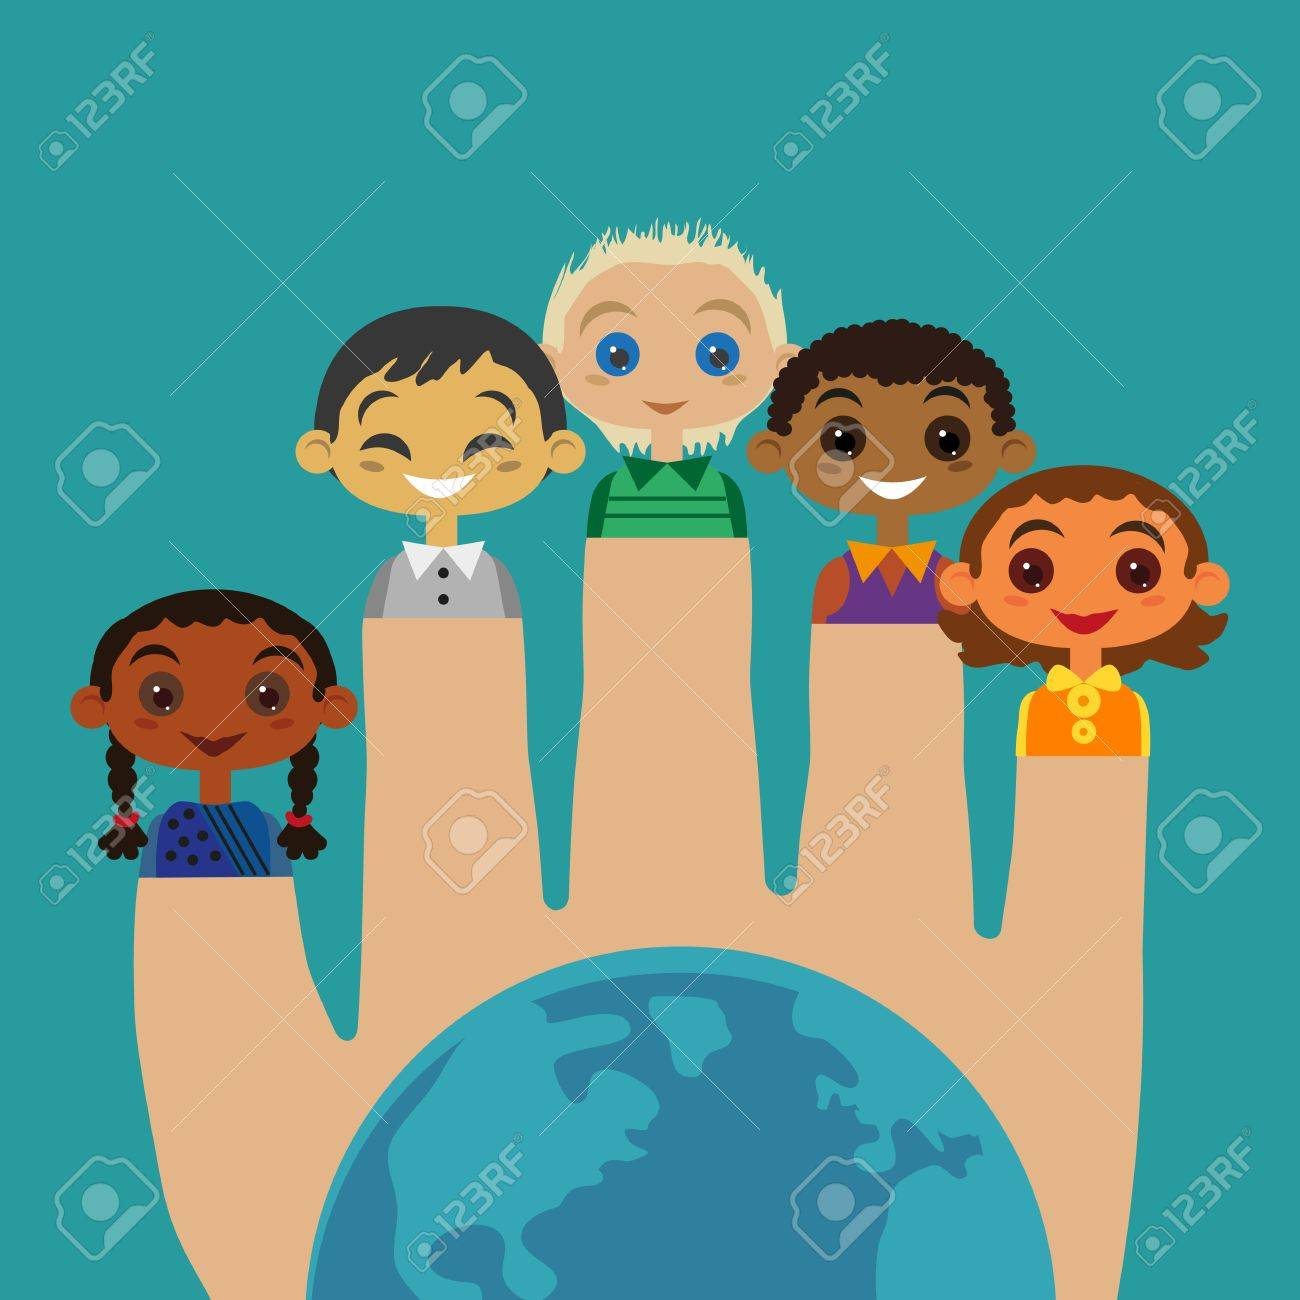 Multicultural friendship Concept  United Kids  Unity of different